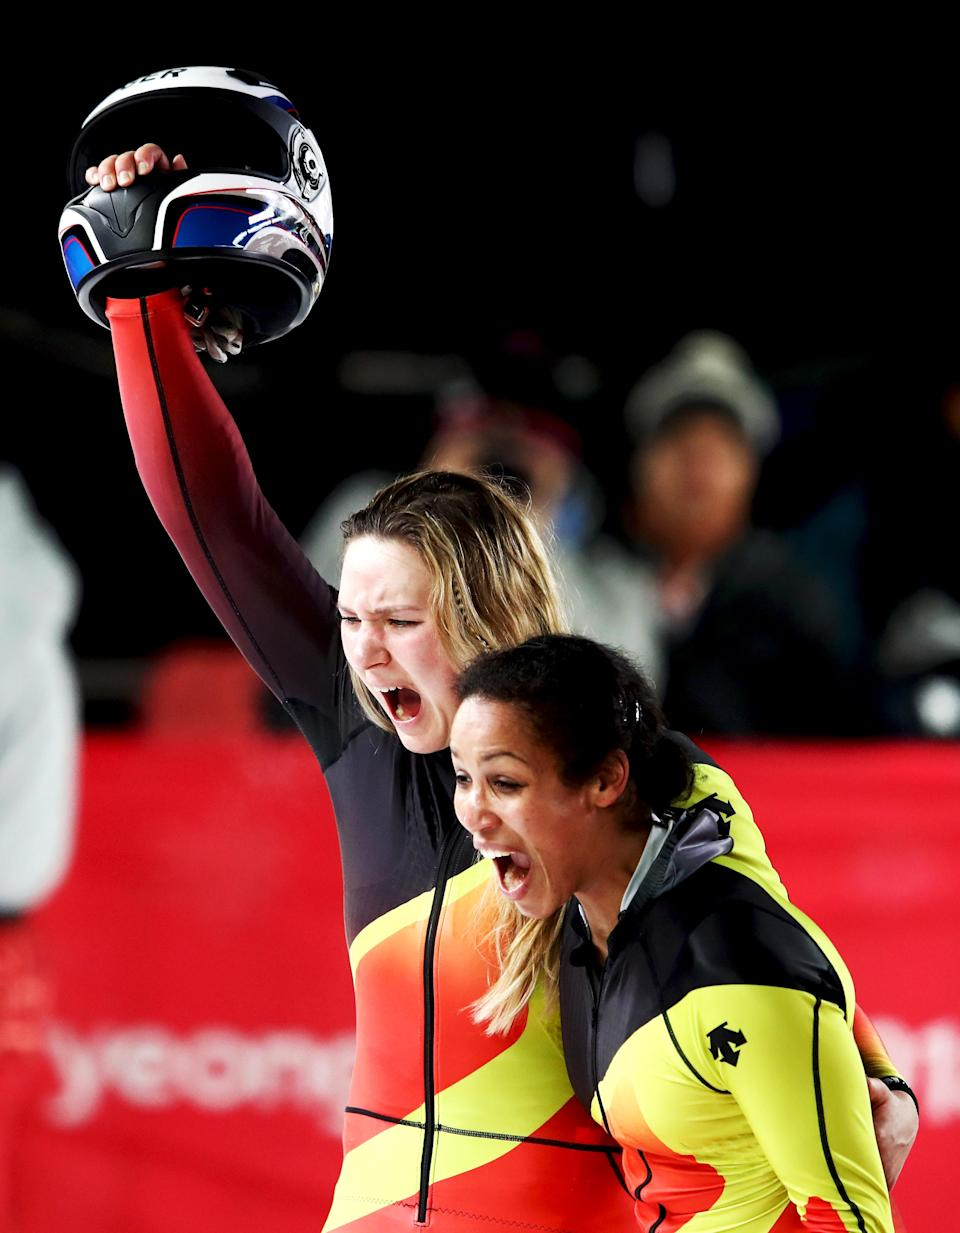 <p>Gold medal winners Mariama Jamanka and Lisa Buckwitz of Germany celebrate in the finish area during the Women's Bobsleigh at the PyeongChang 2018 Winter Olympic Games on February 21, 2018.<br> (Photo by Clive Mason/Getty Images) </p>